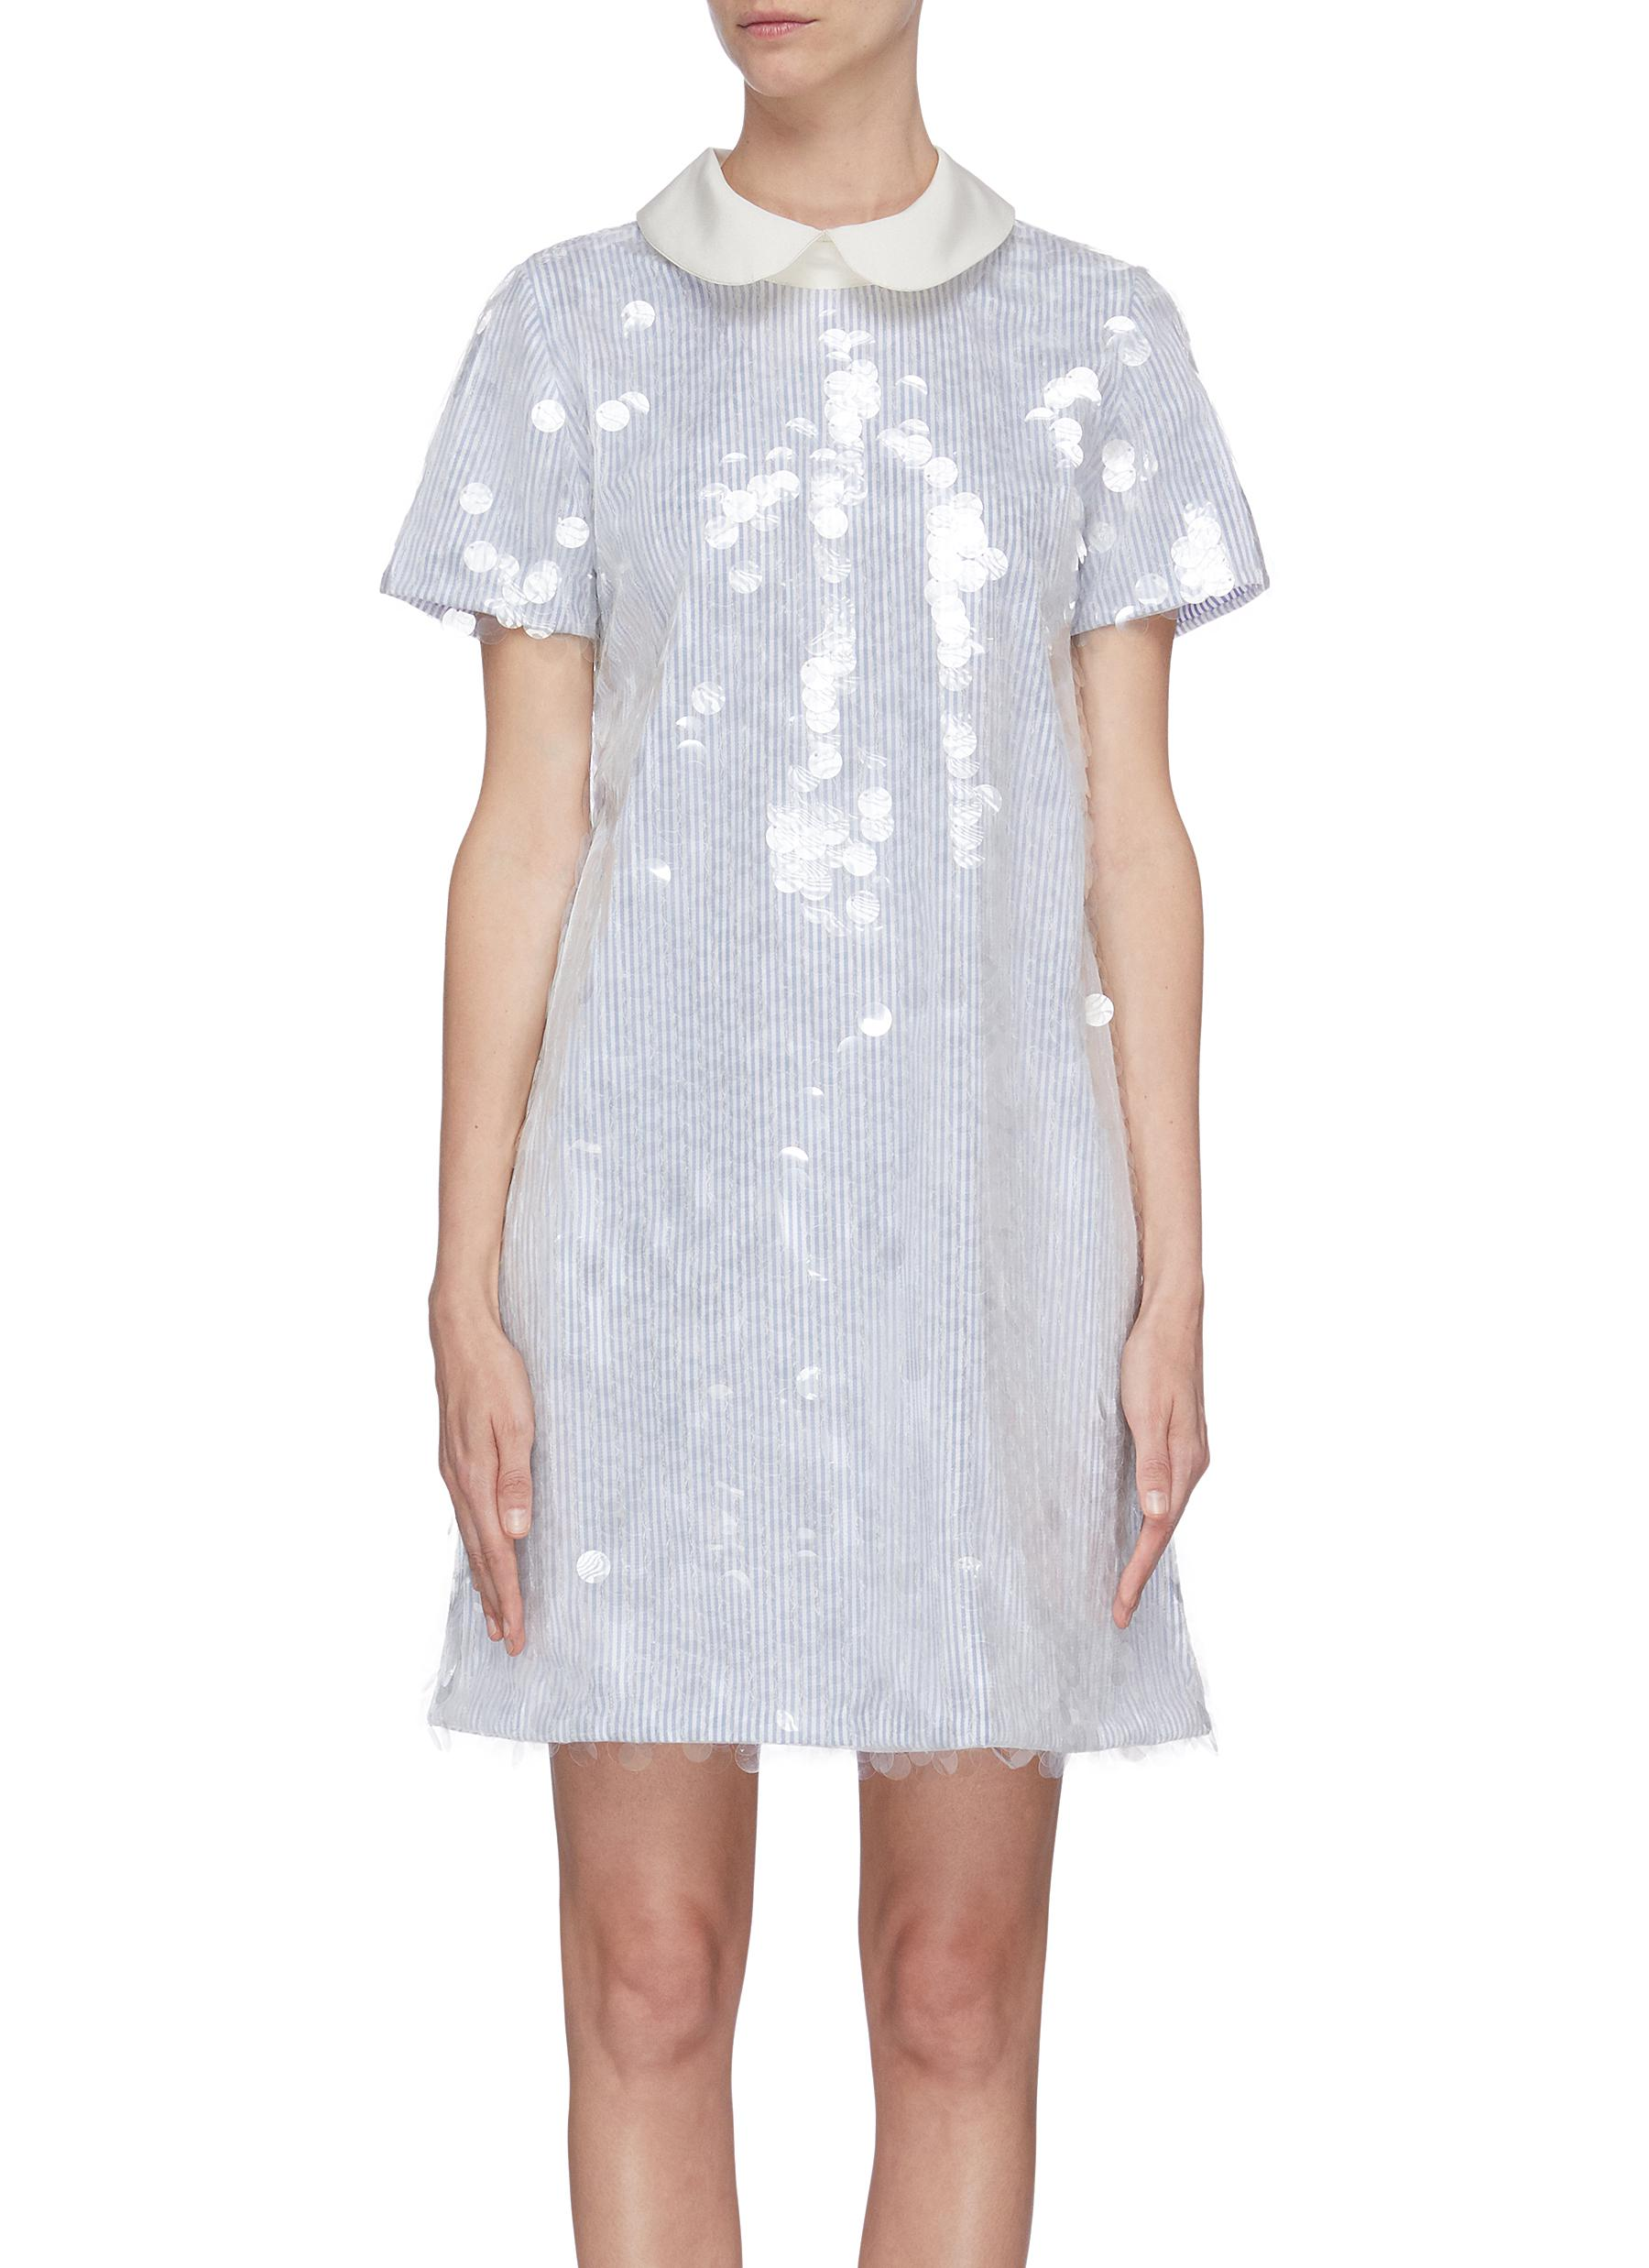 Buy Leal Daccarett Dresses 'Aguacero' sequin peter pan collar mini dress